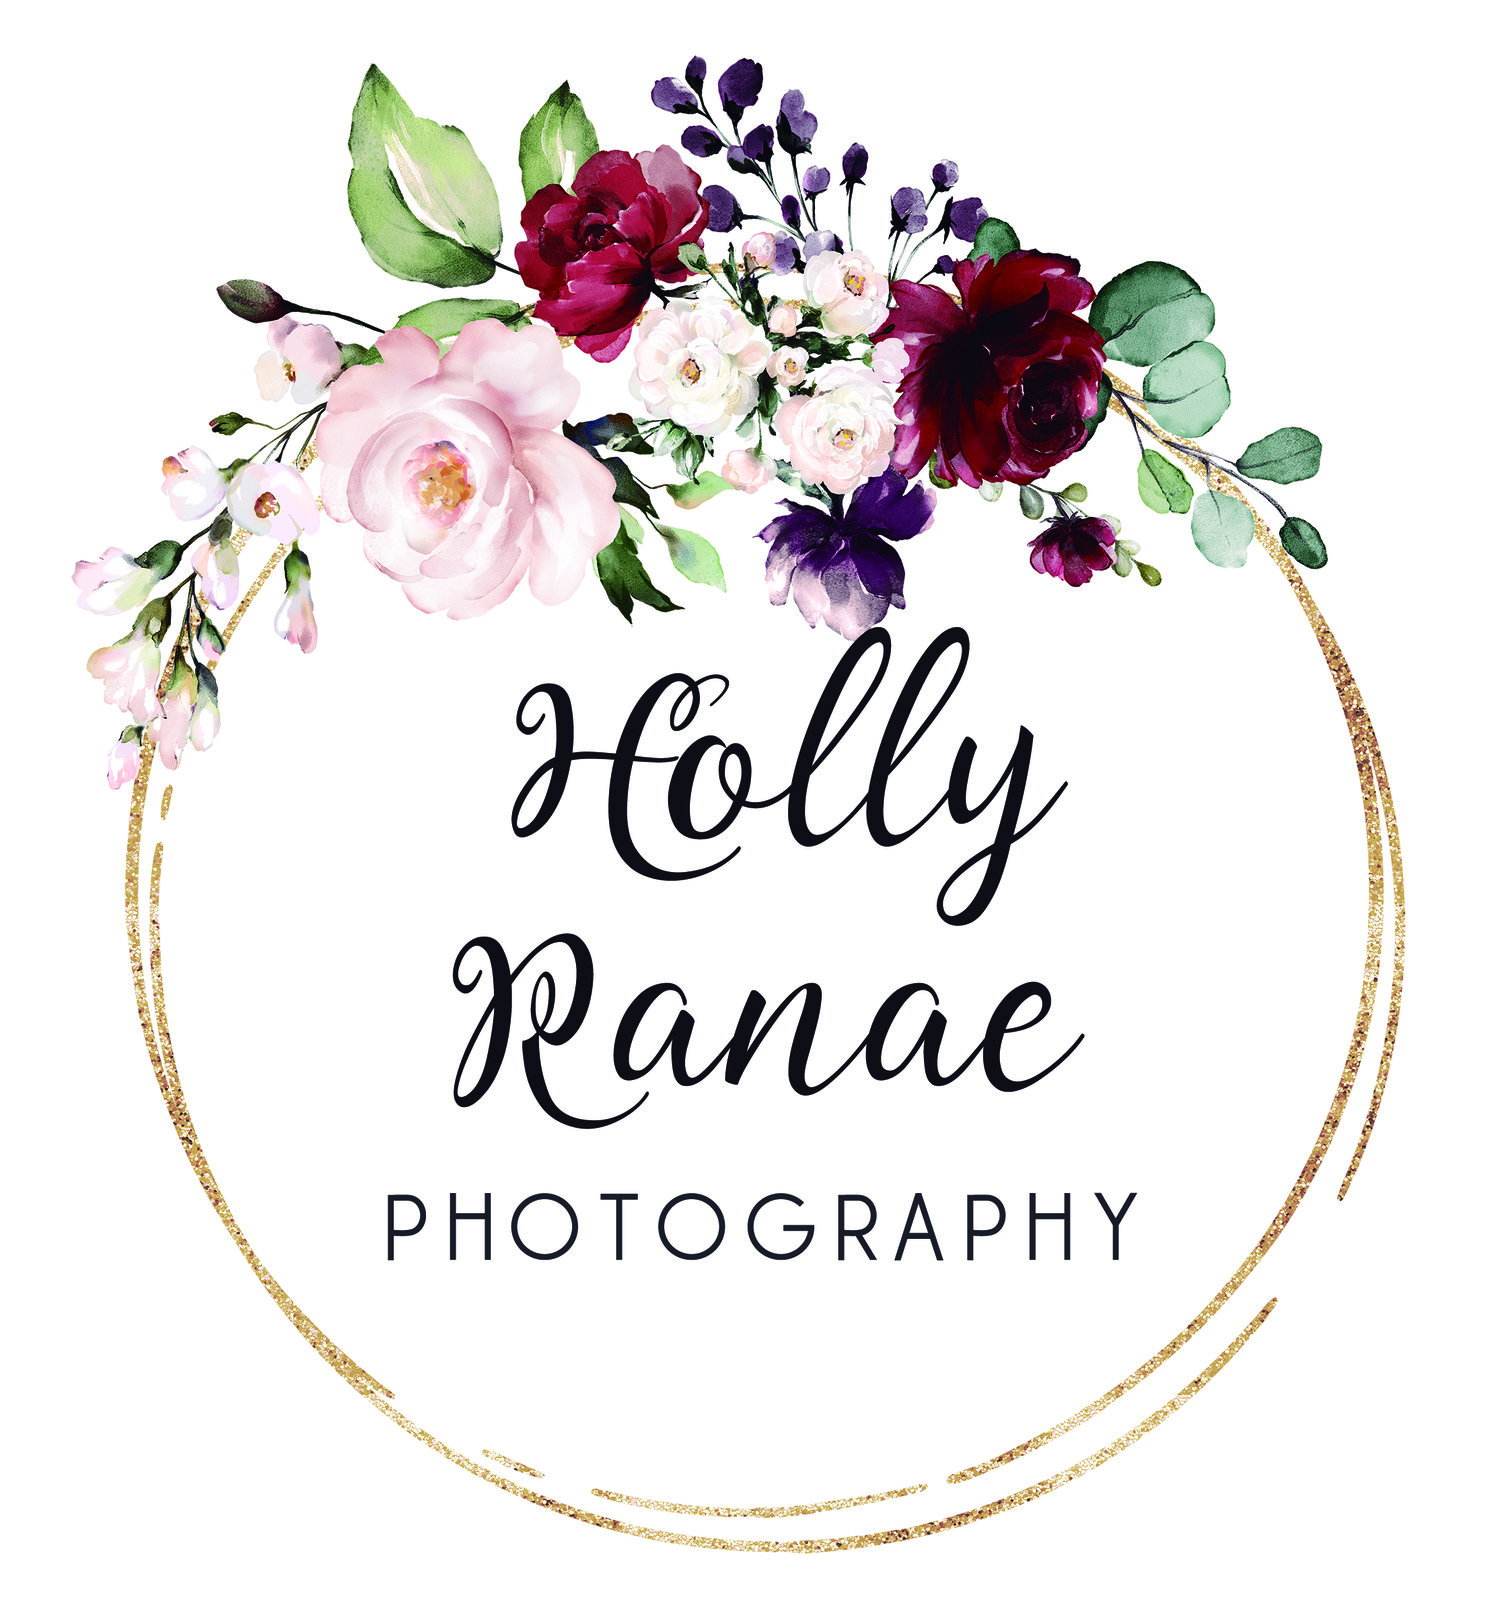 HollyRanae Photography